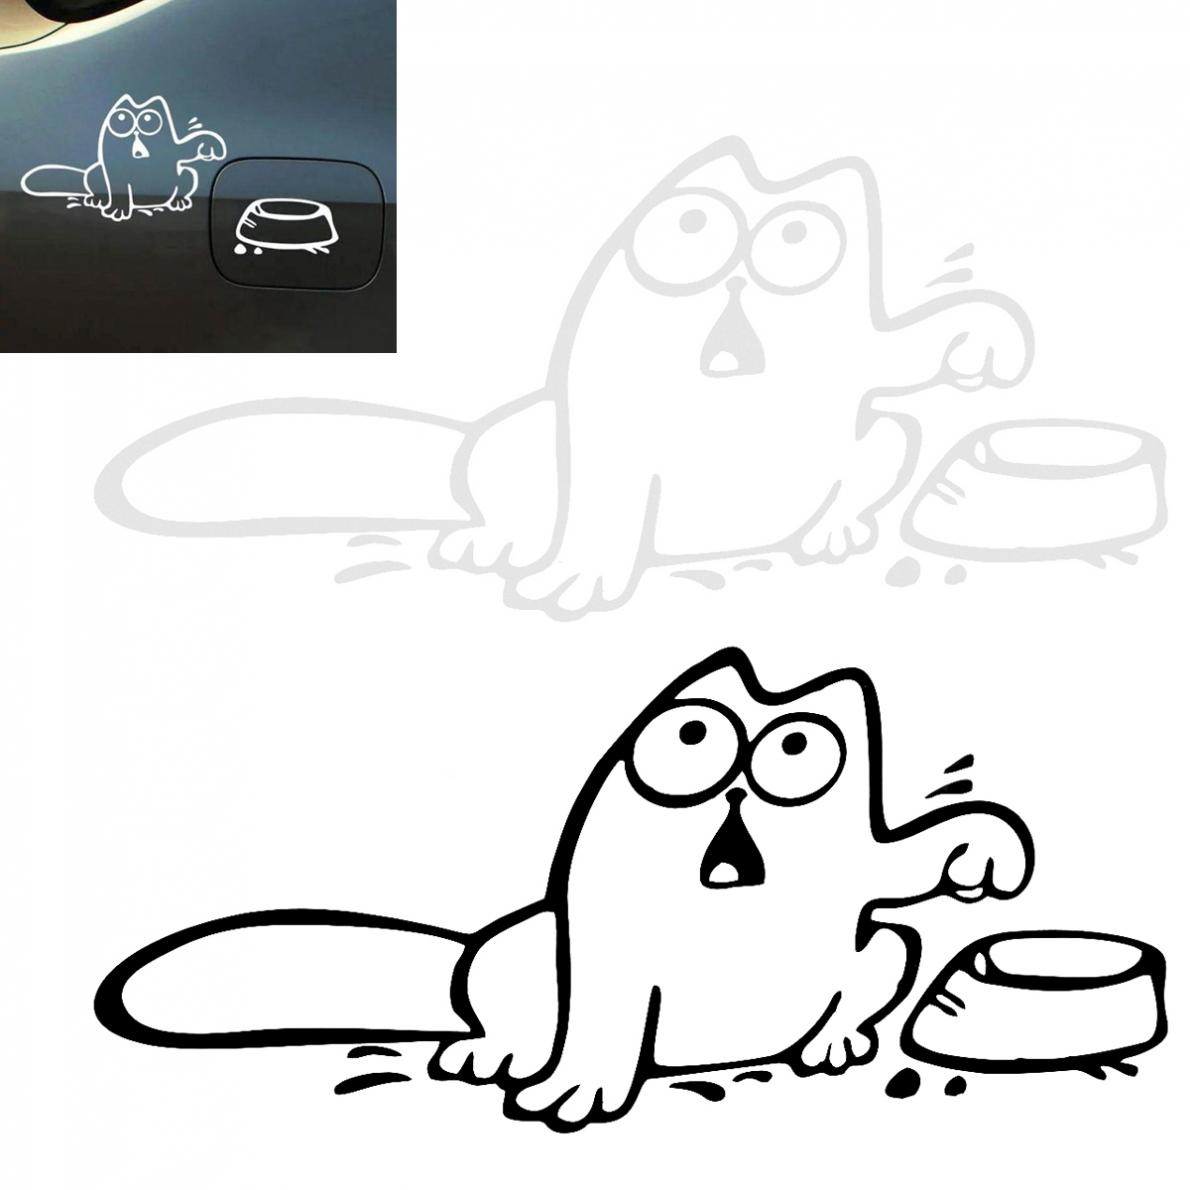 16 x 10CM Reflective Material Strong Adhesion Cat Pattern Creative Funny Car Sticker Accessories for Cars Fuel Tank